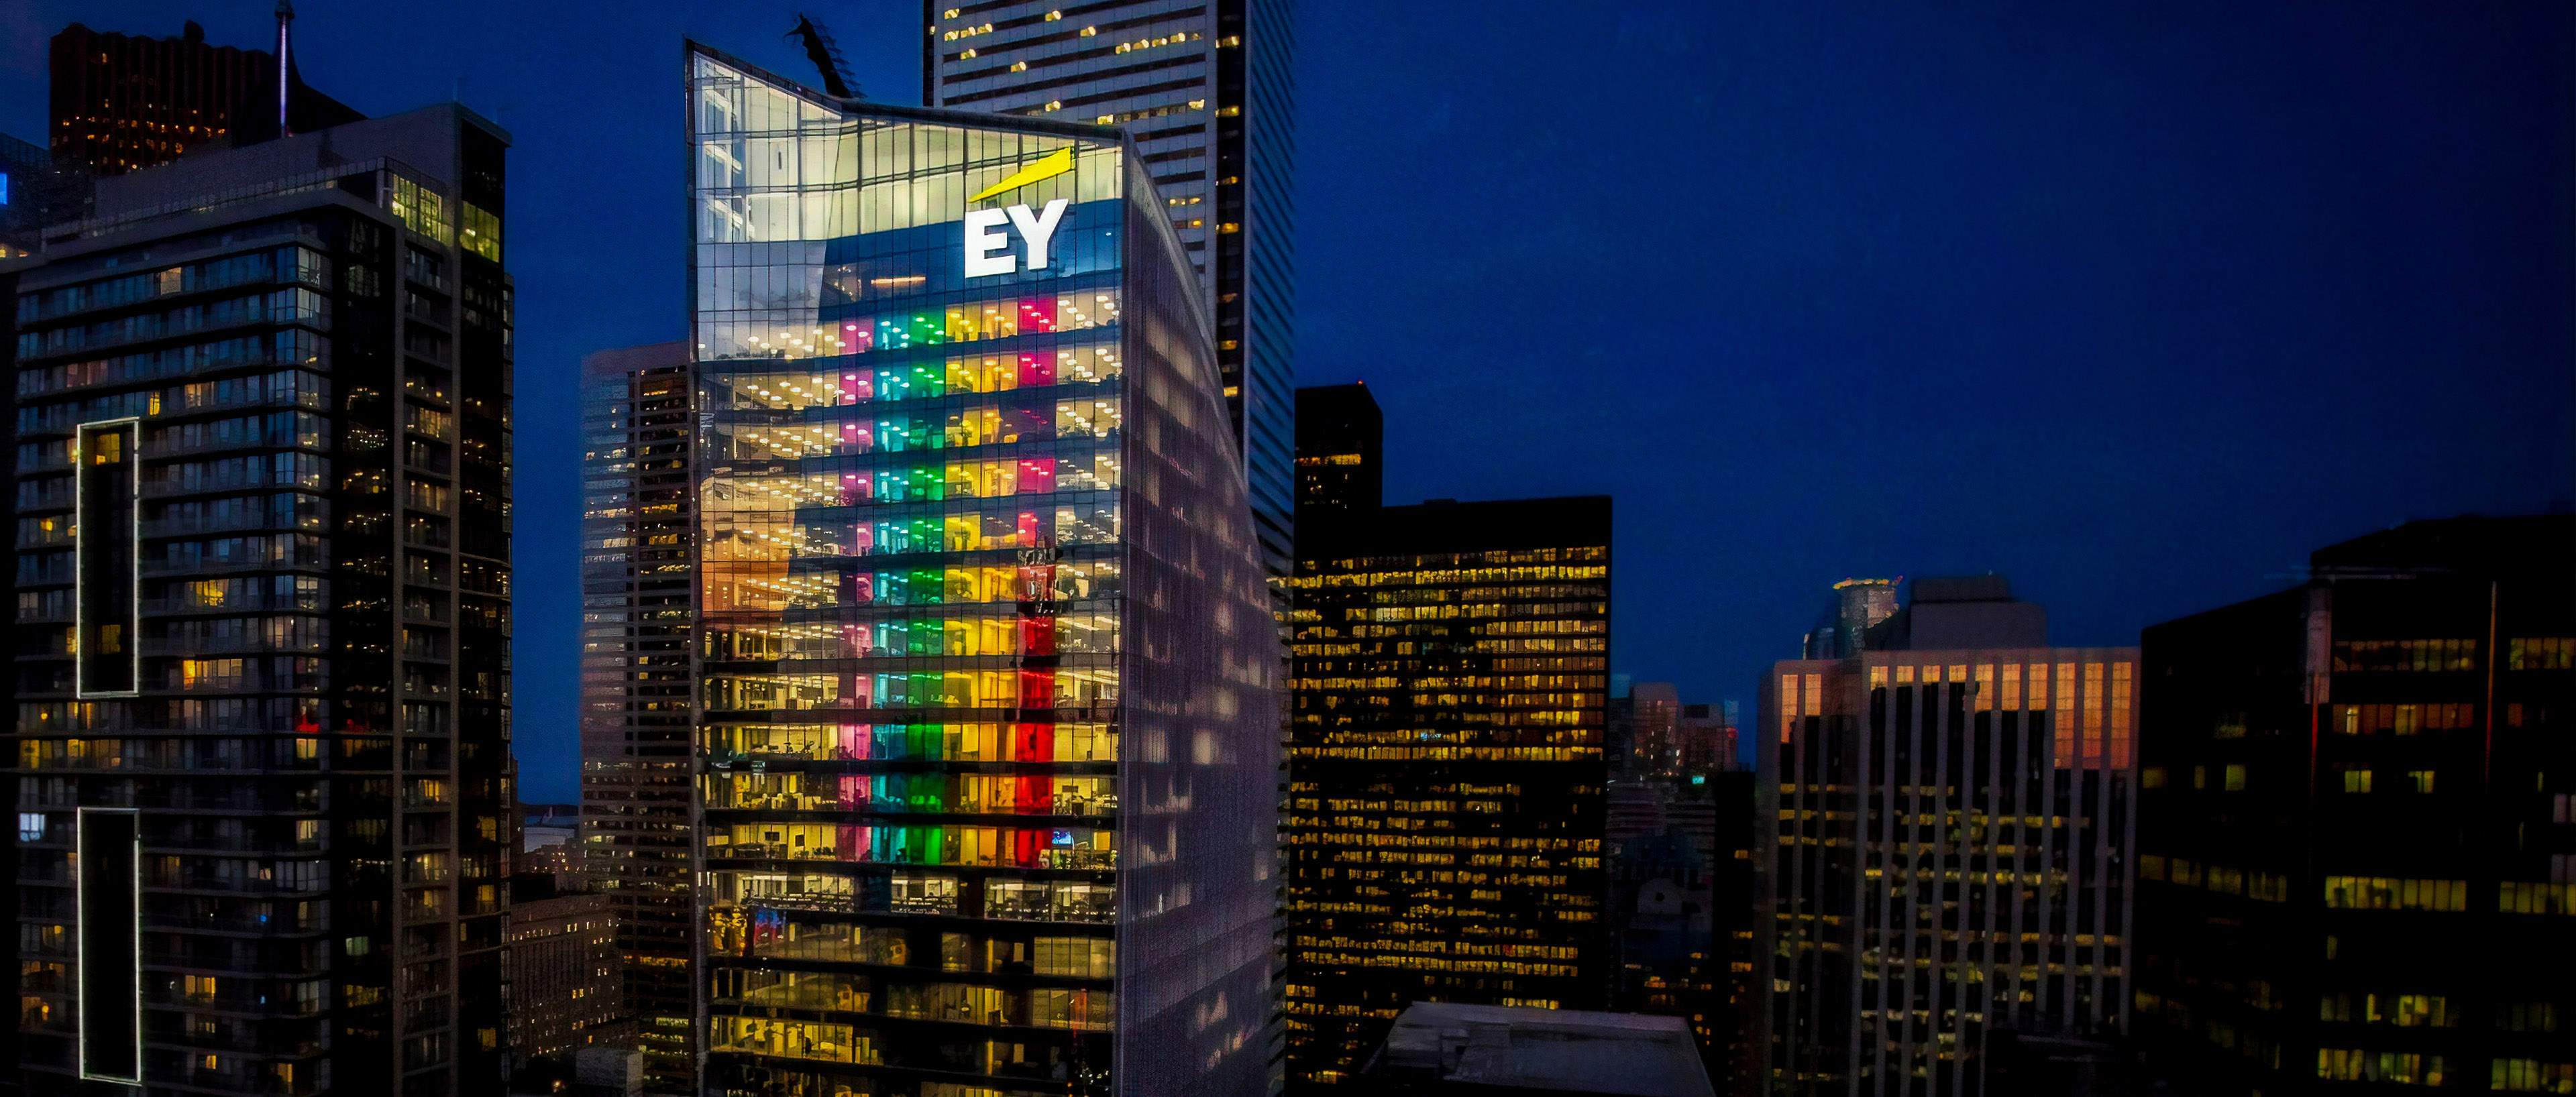 EY Pride building